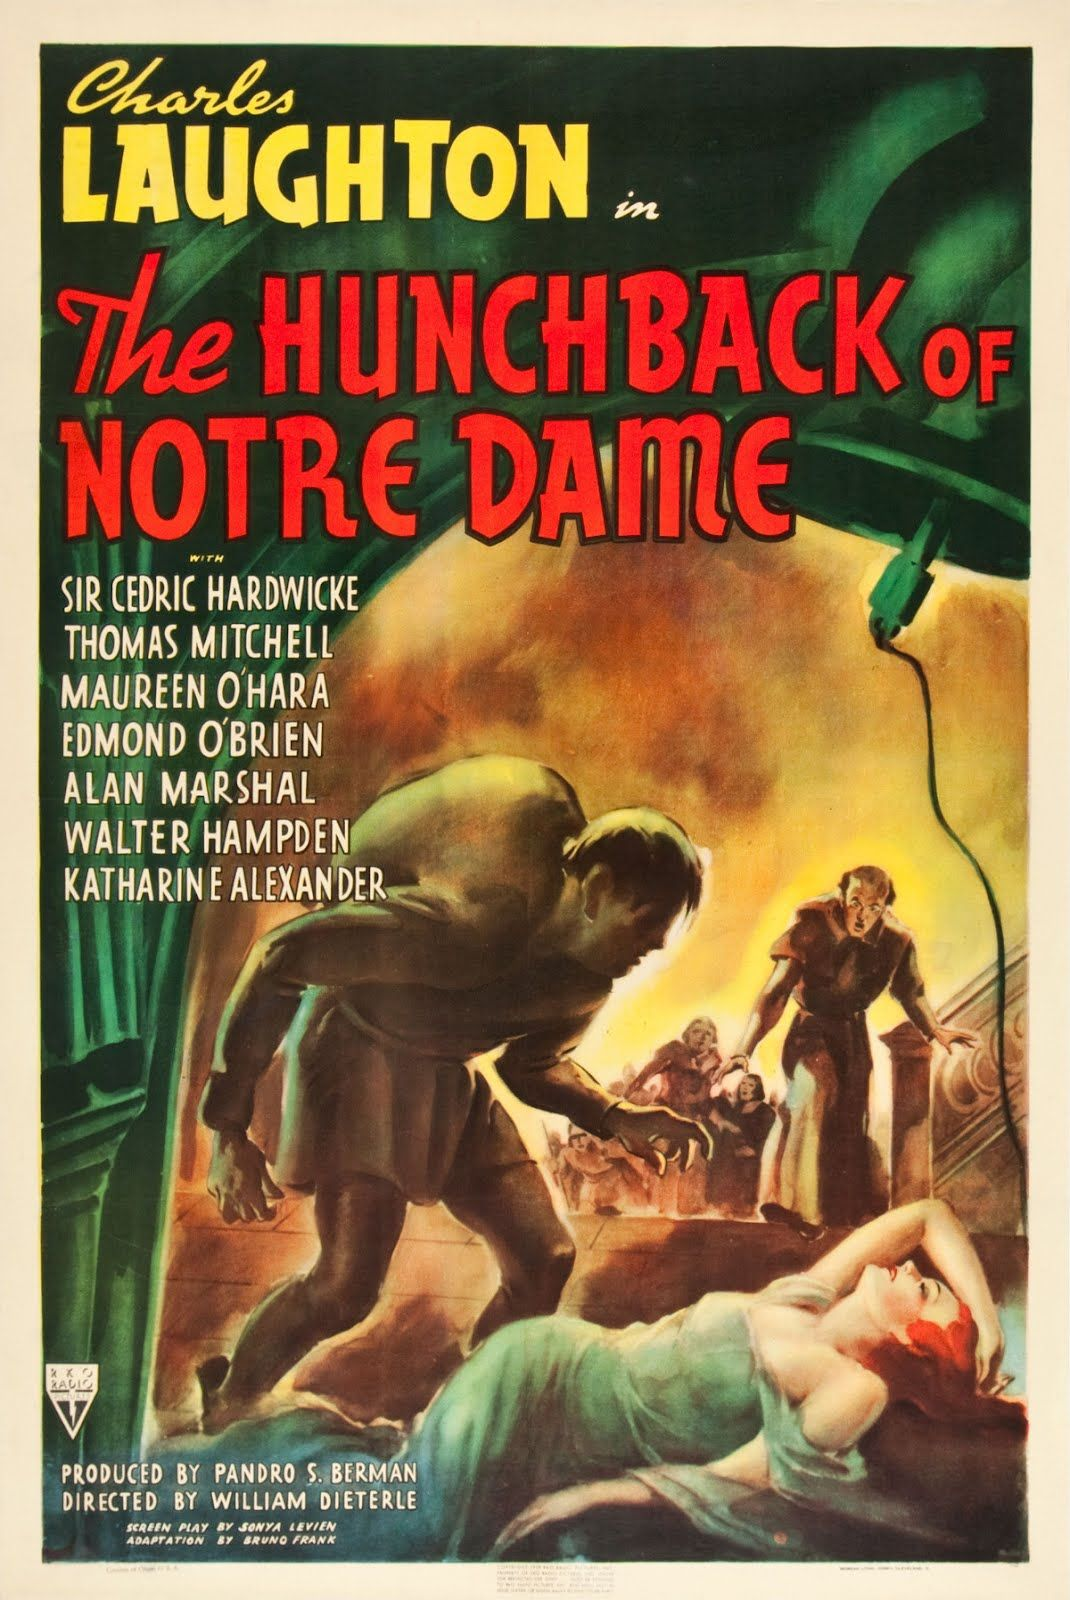 a review of the hunchback of notre dame a film by william dieterie The hunchback of notre dame film 0 love it save it 2 william dieterle: the film is visually stunning and the already dark romantic tale of unrequited.